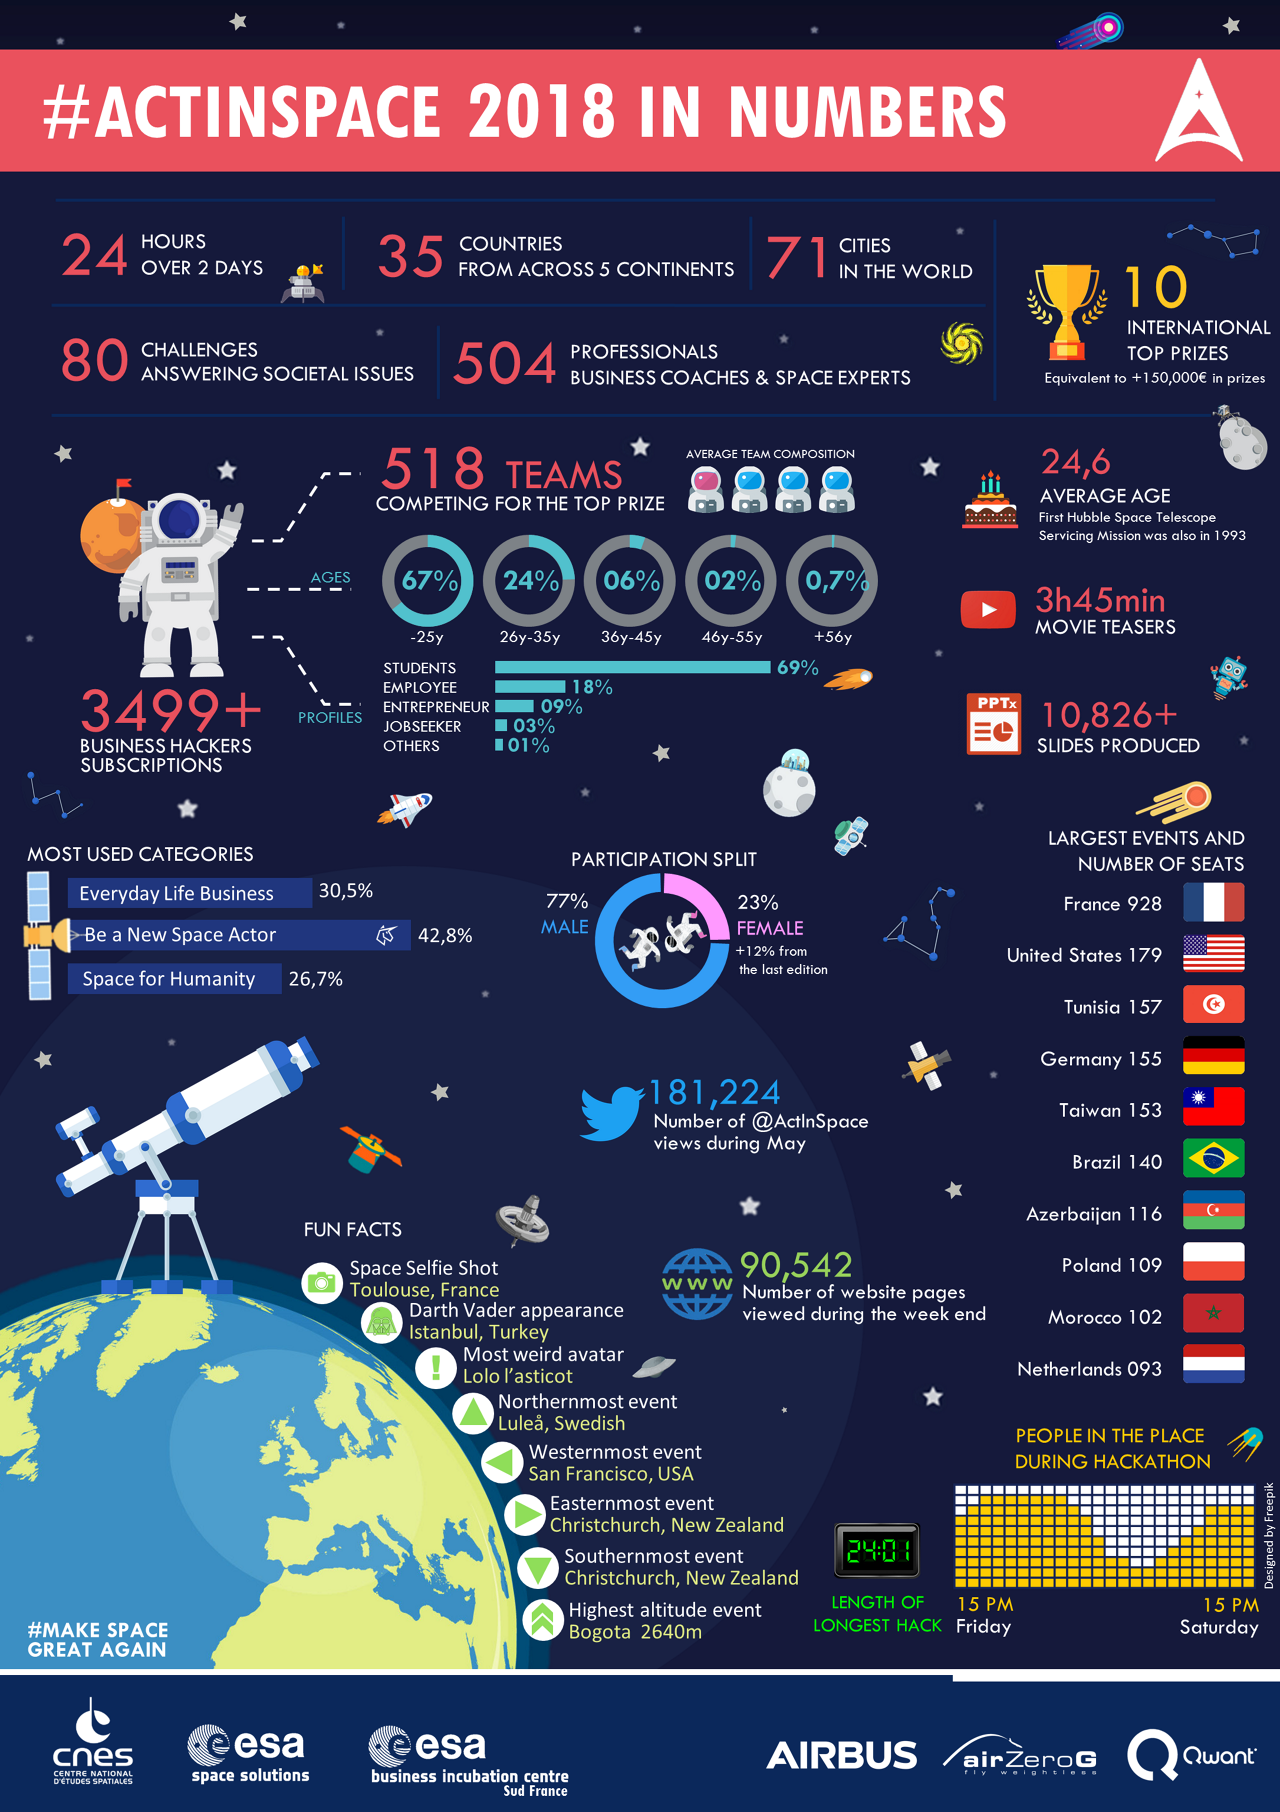 ACTINSPACE IN NUMBERS INFOGRAPHIC